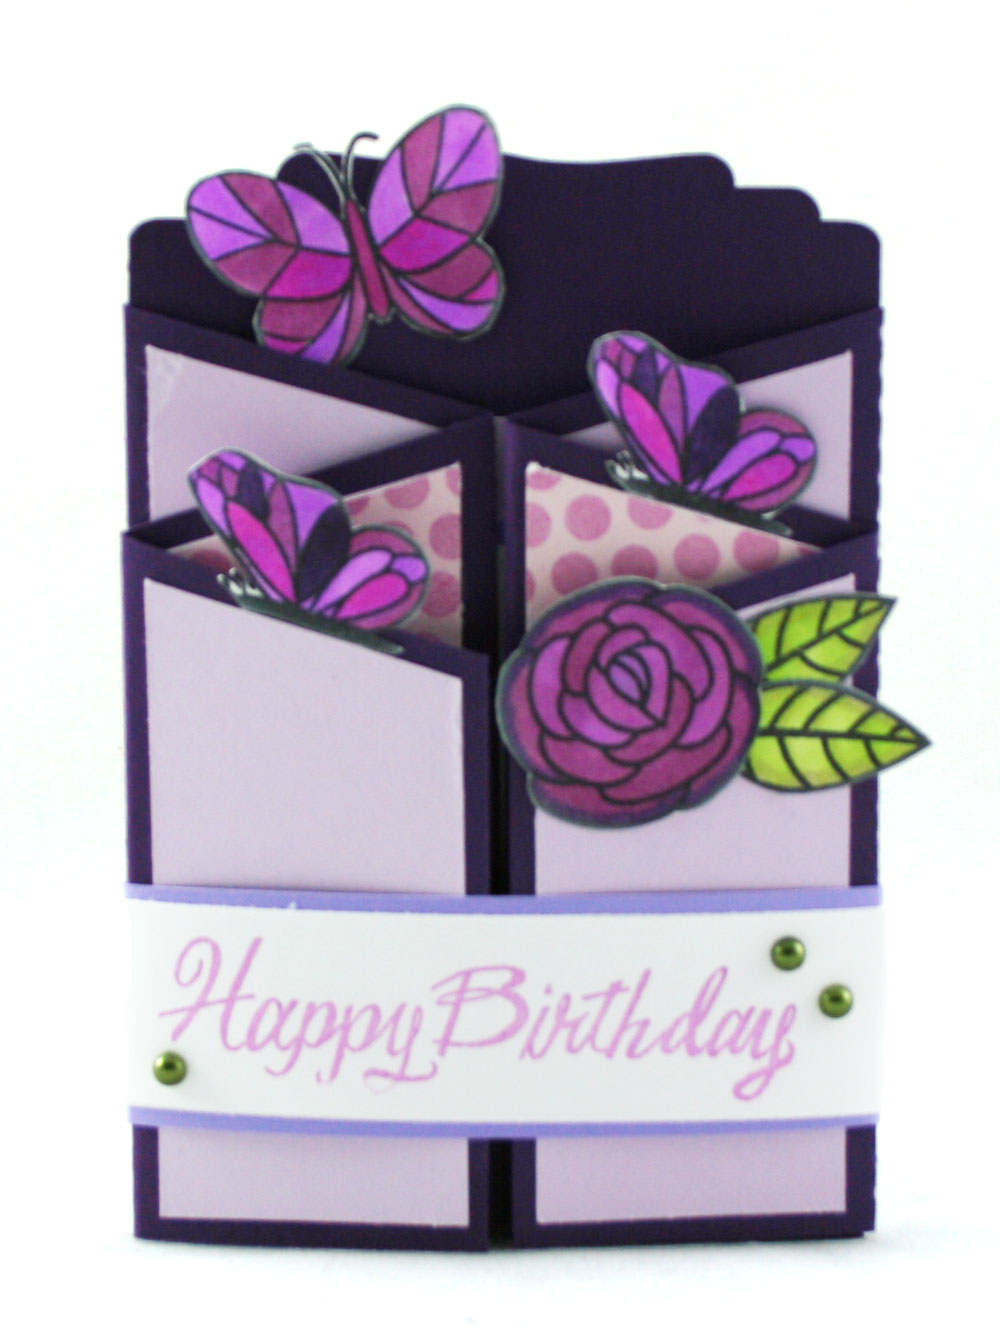 Fun Folds Gate Fold Birthday Card